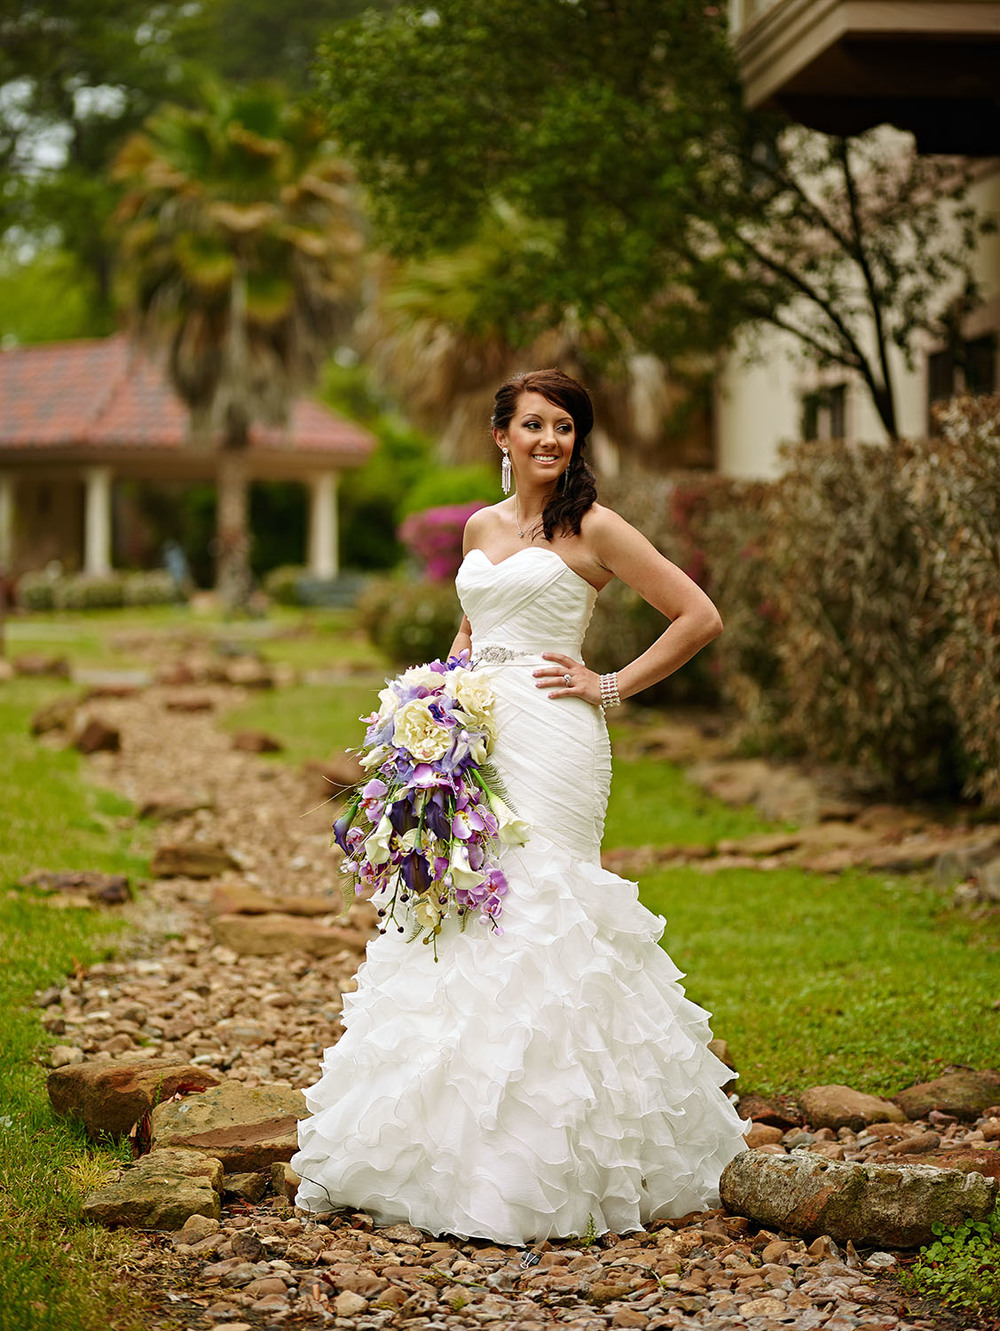 Bridal photos were also done at Northwest Forest Conference Center.